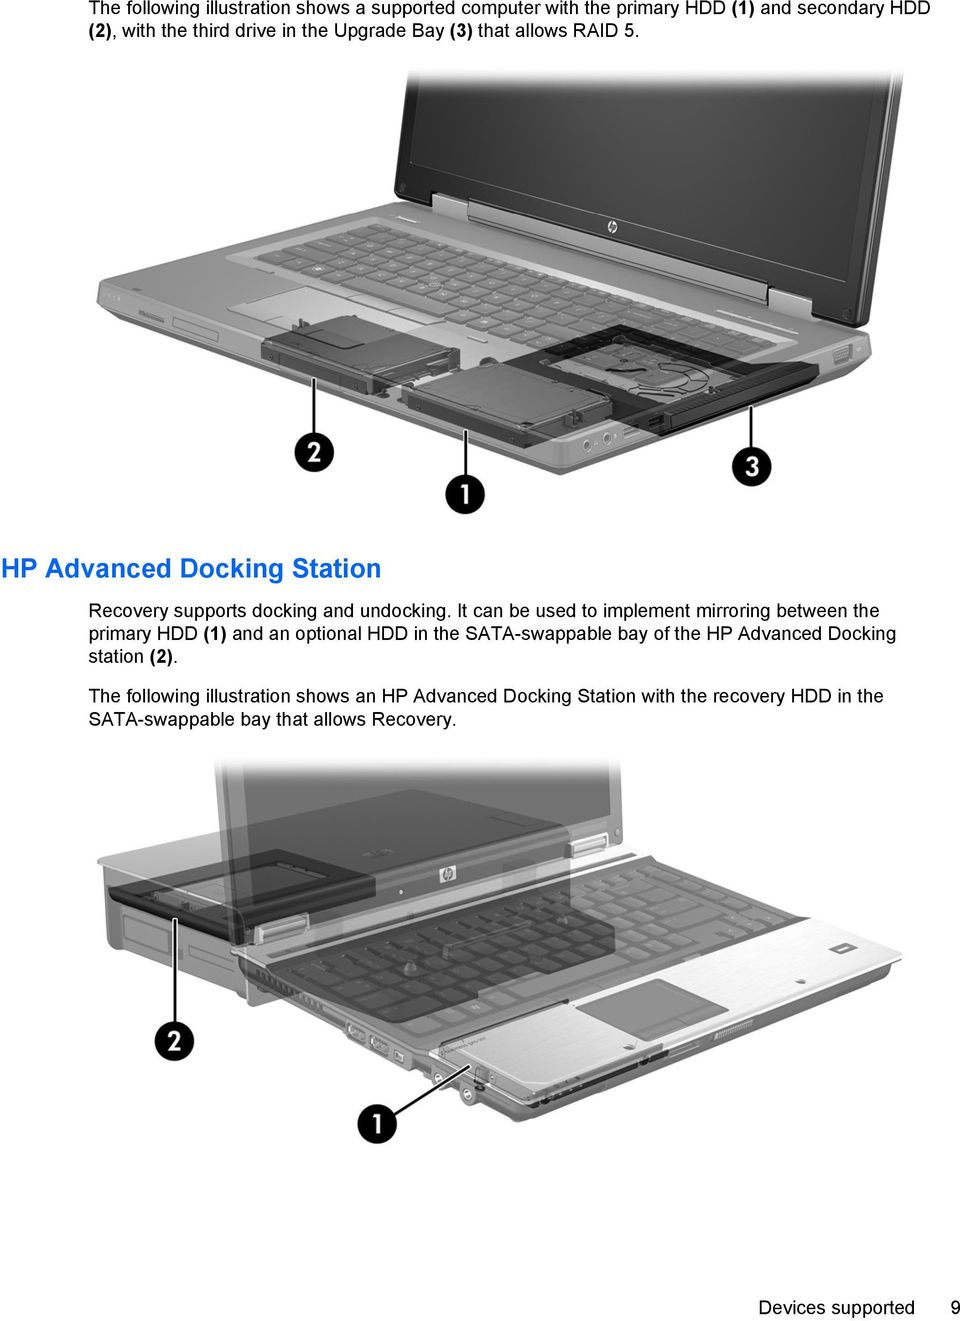 It can be used to implement mirroring between the primary HDD (1) and an optional HDD in the SATA-swappable bay of the HP Advanced